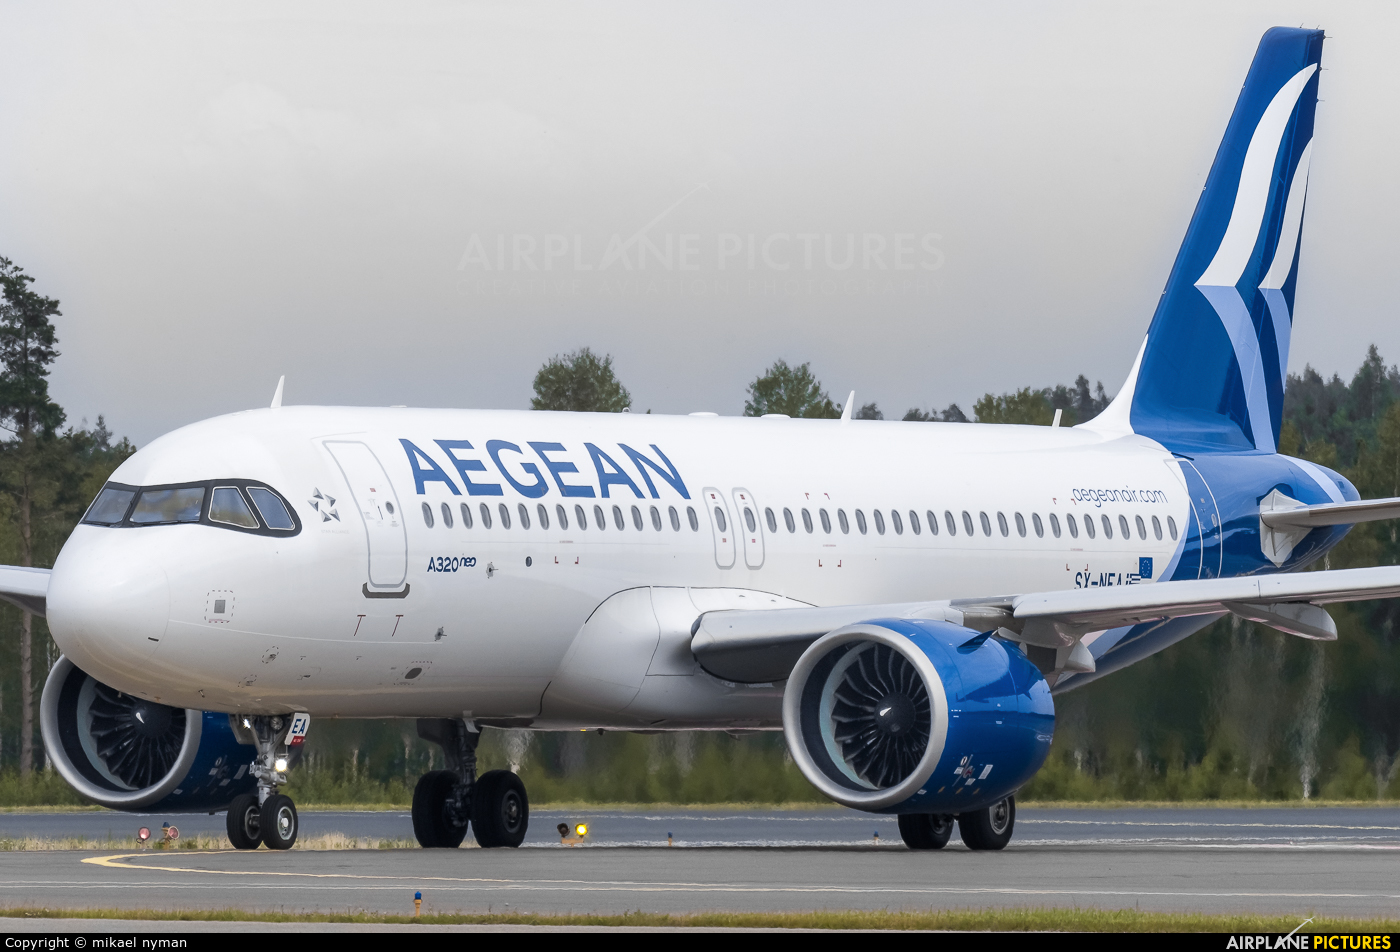 SX-NEA - Aegean Airlines Airbus A320 NEO at Helsinki - Vantaa | Photo ID  1331141 | Airplane-Pictures.net